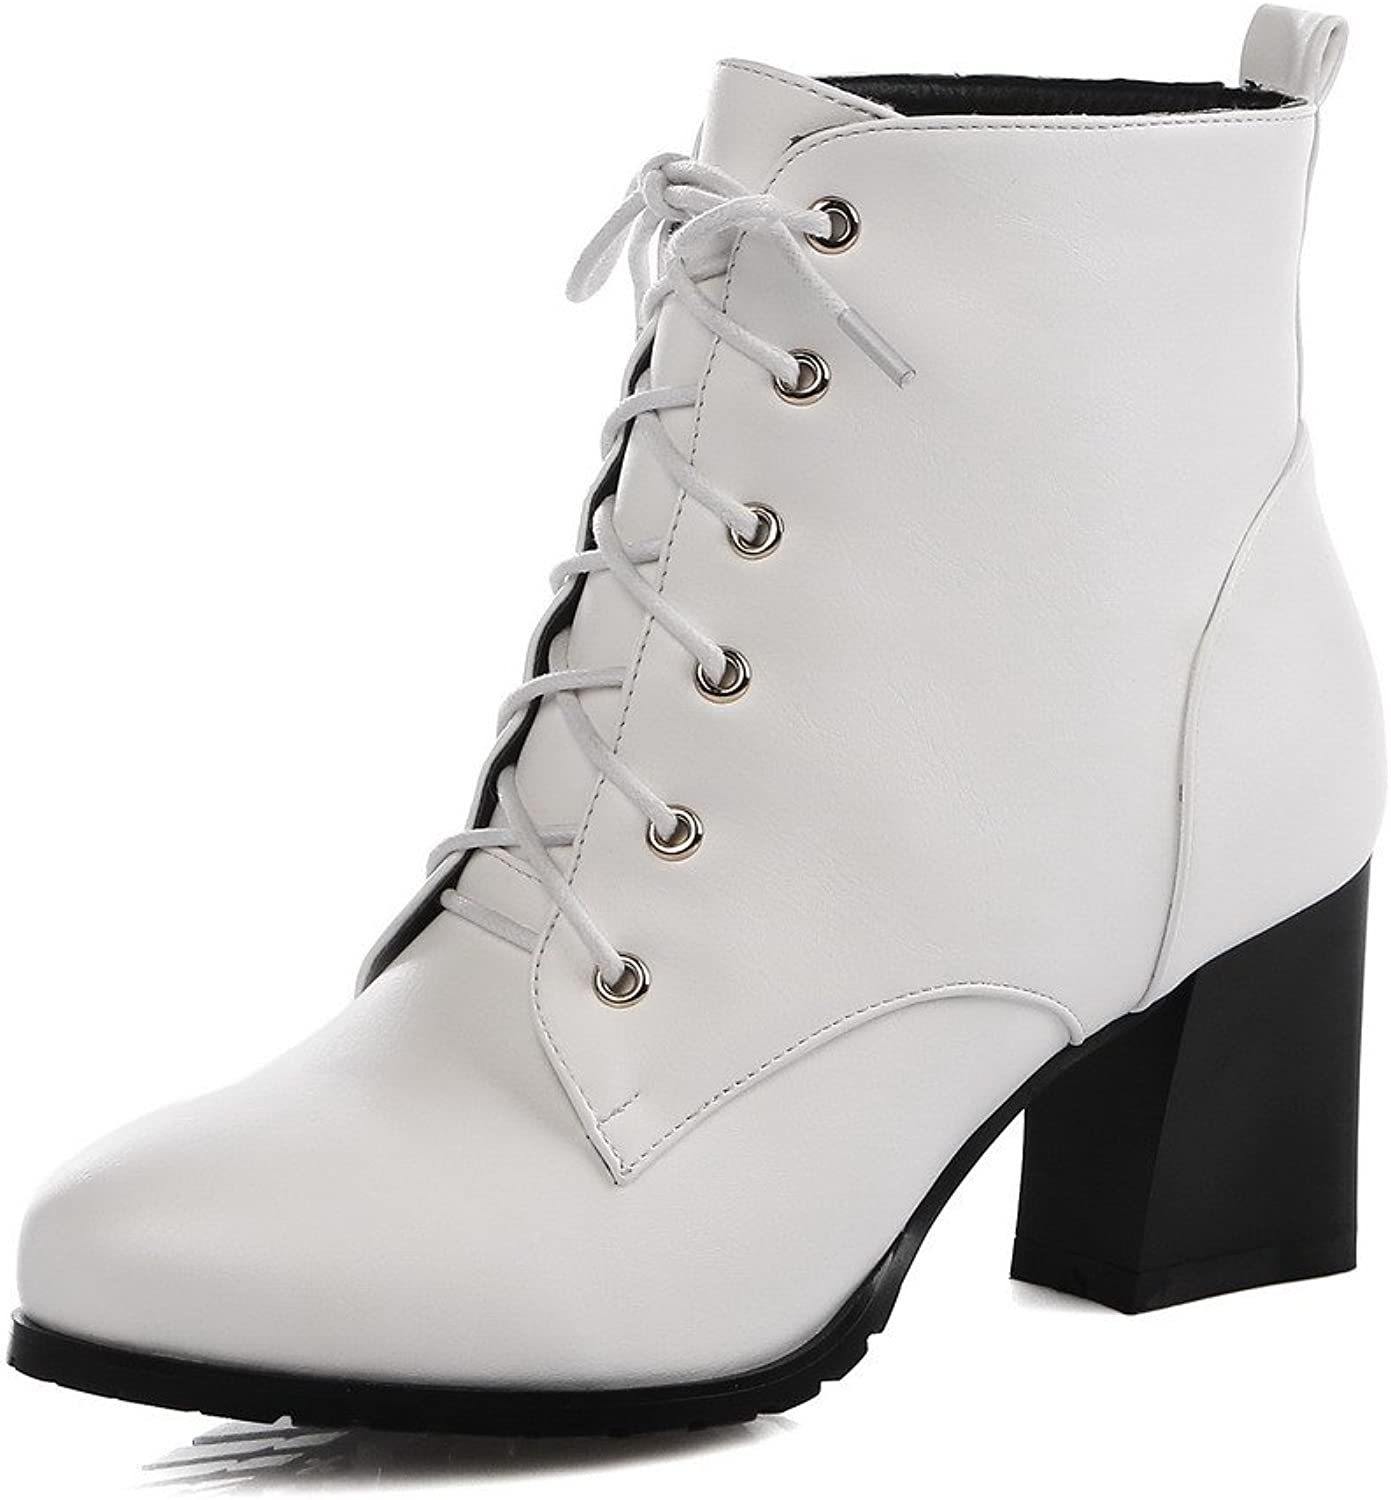 WeenFashion Women's Round Toe High Platform Ankle Strap Lace-up Closure Chunky Heels PU Boots with Zipper